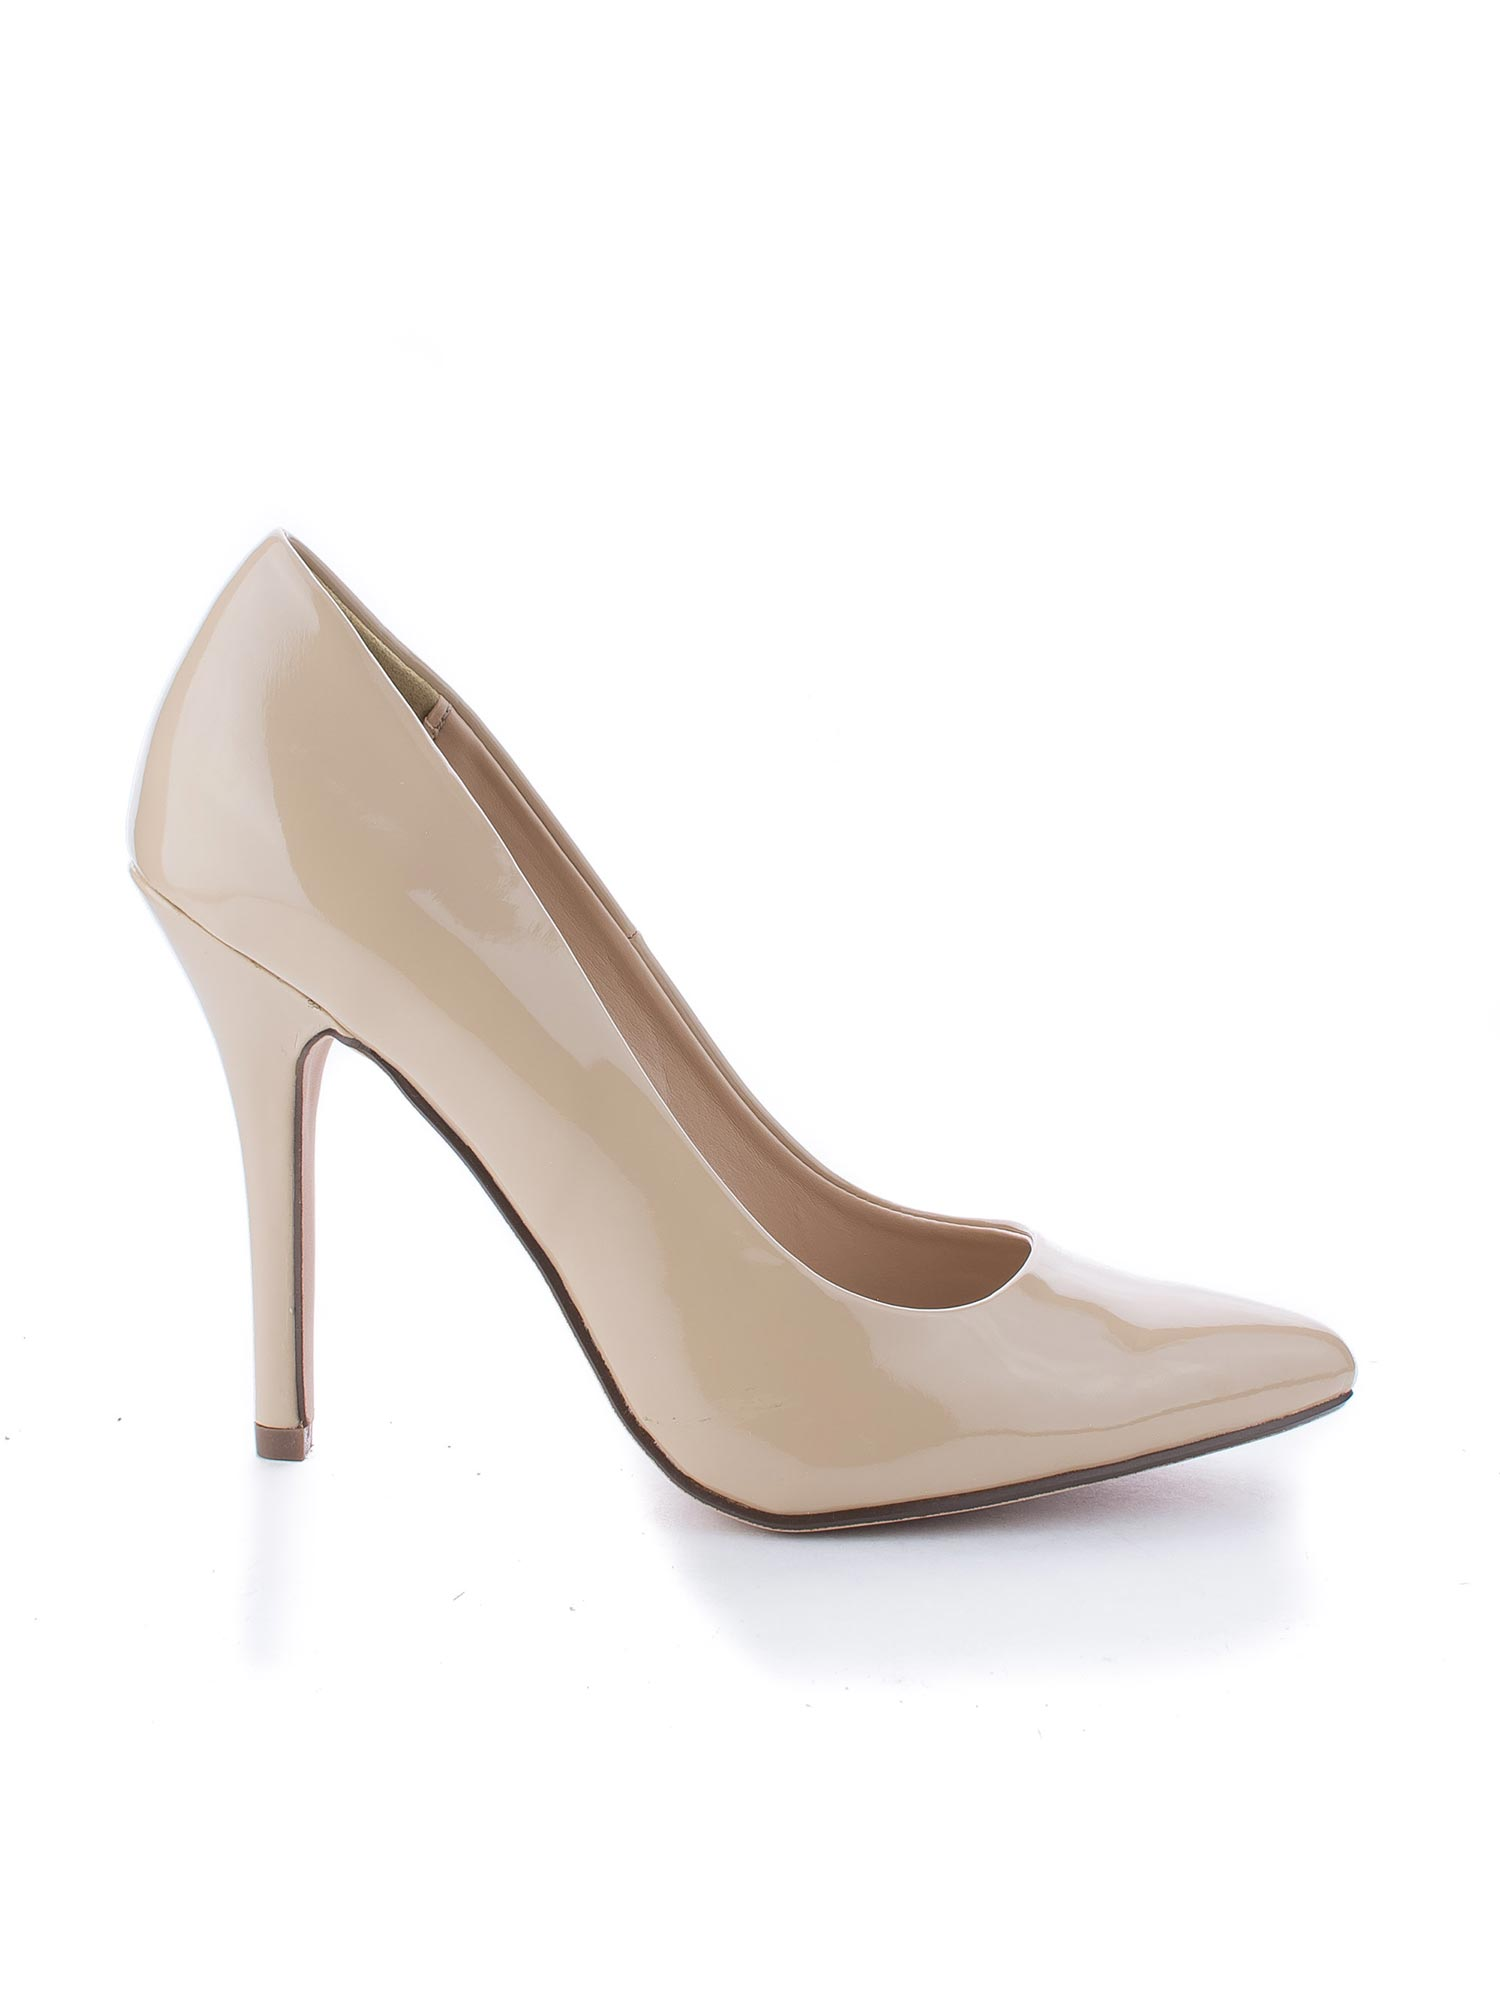 Date by Delicious, Classic High Heel Pointed Pointy Toe Dress Plain Pump, Women New Shoes